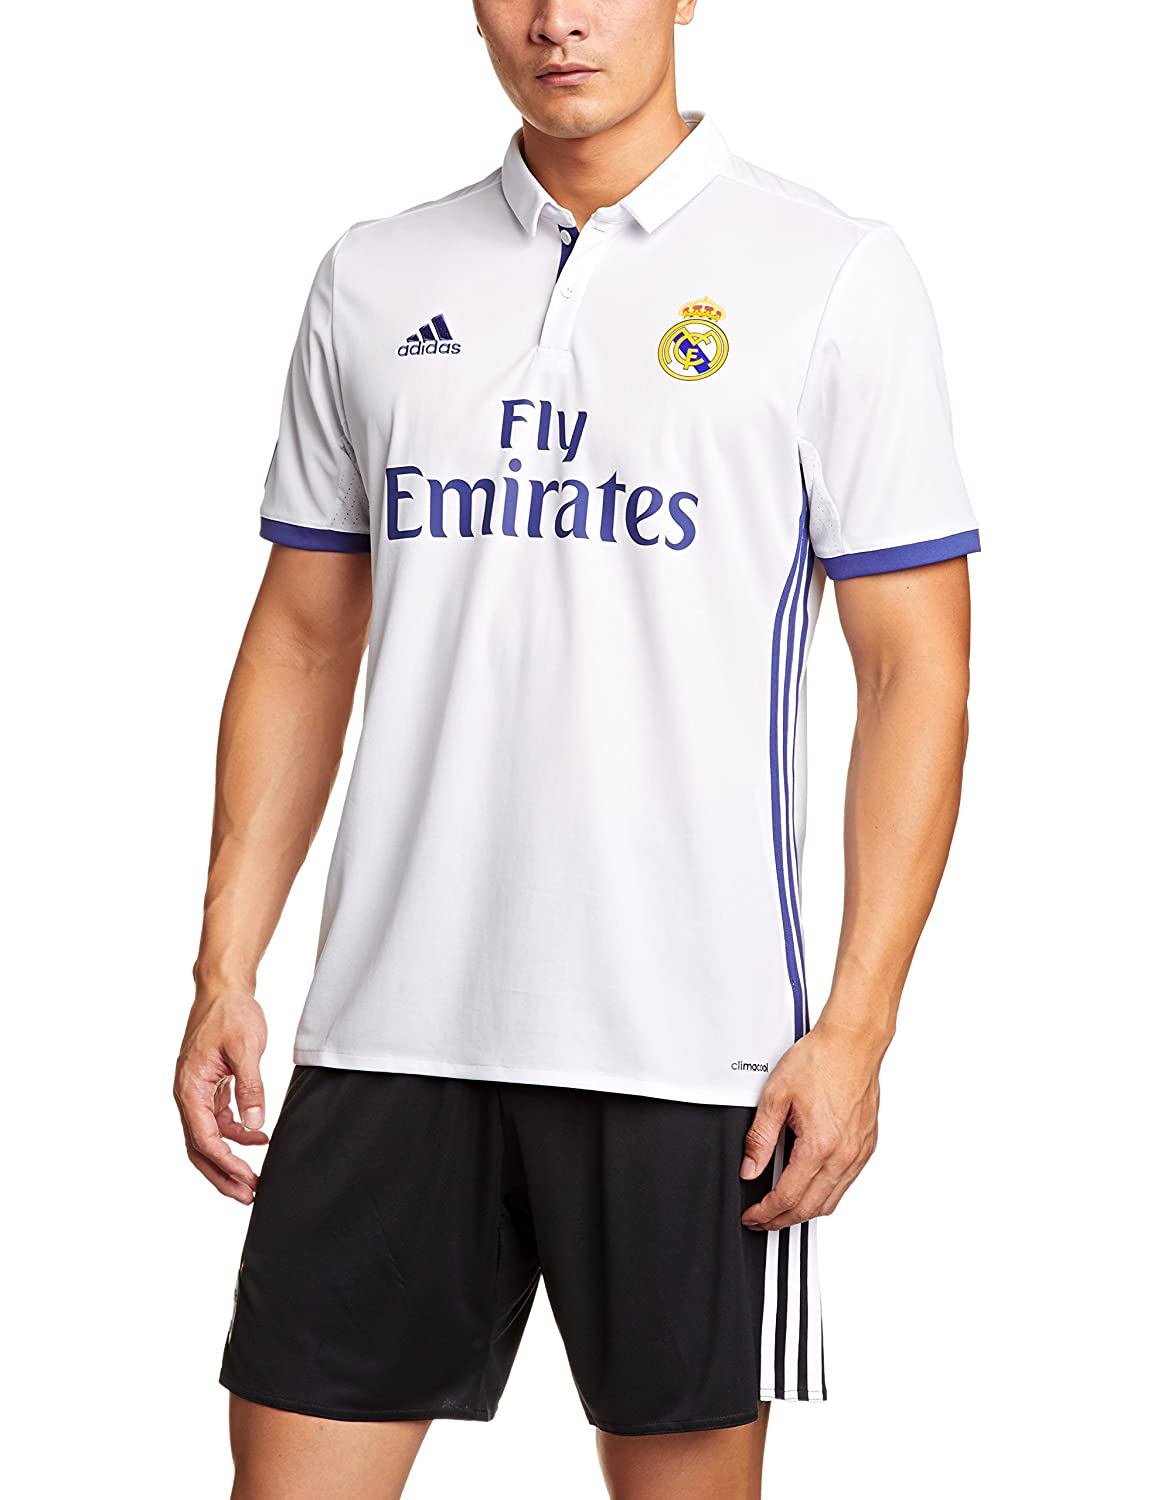 Adidas Men s Real Madrid Home Jersey  Amazon.co.uk  Sports   Outdoors 4fae5d0b0c